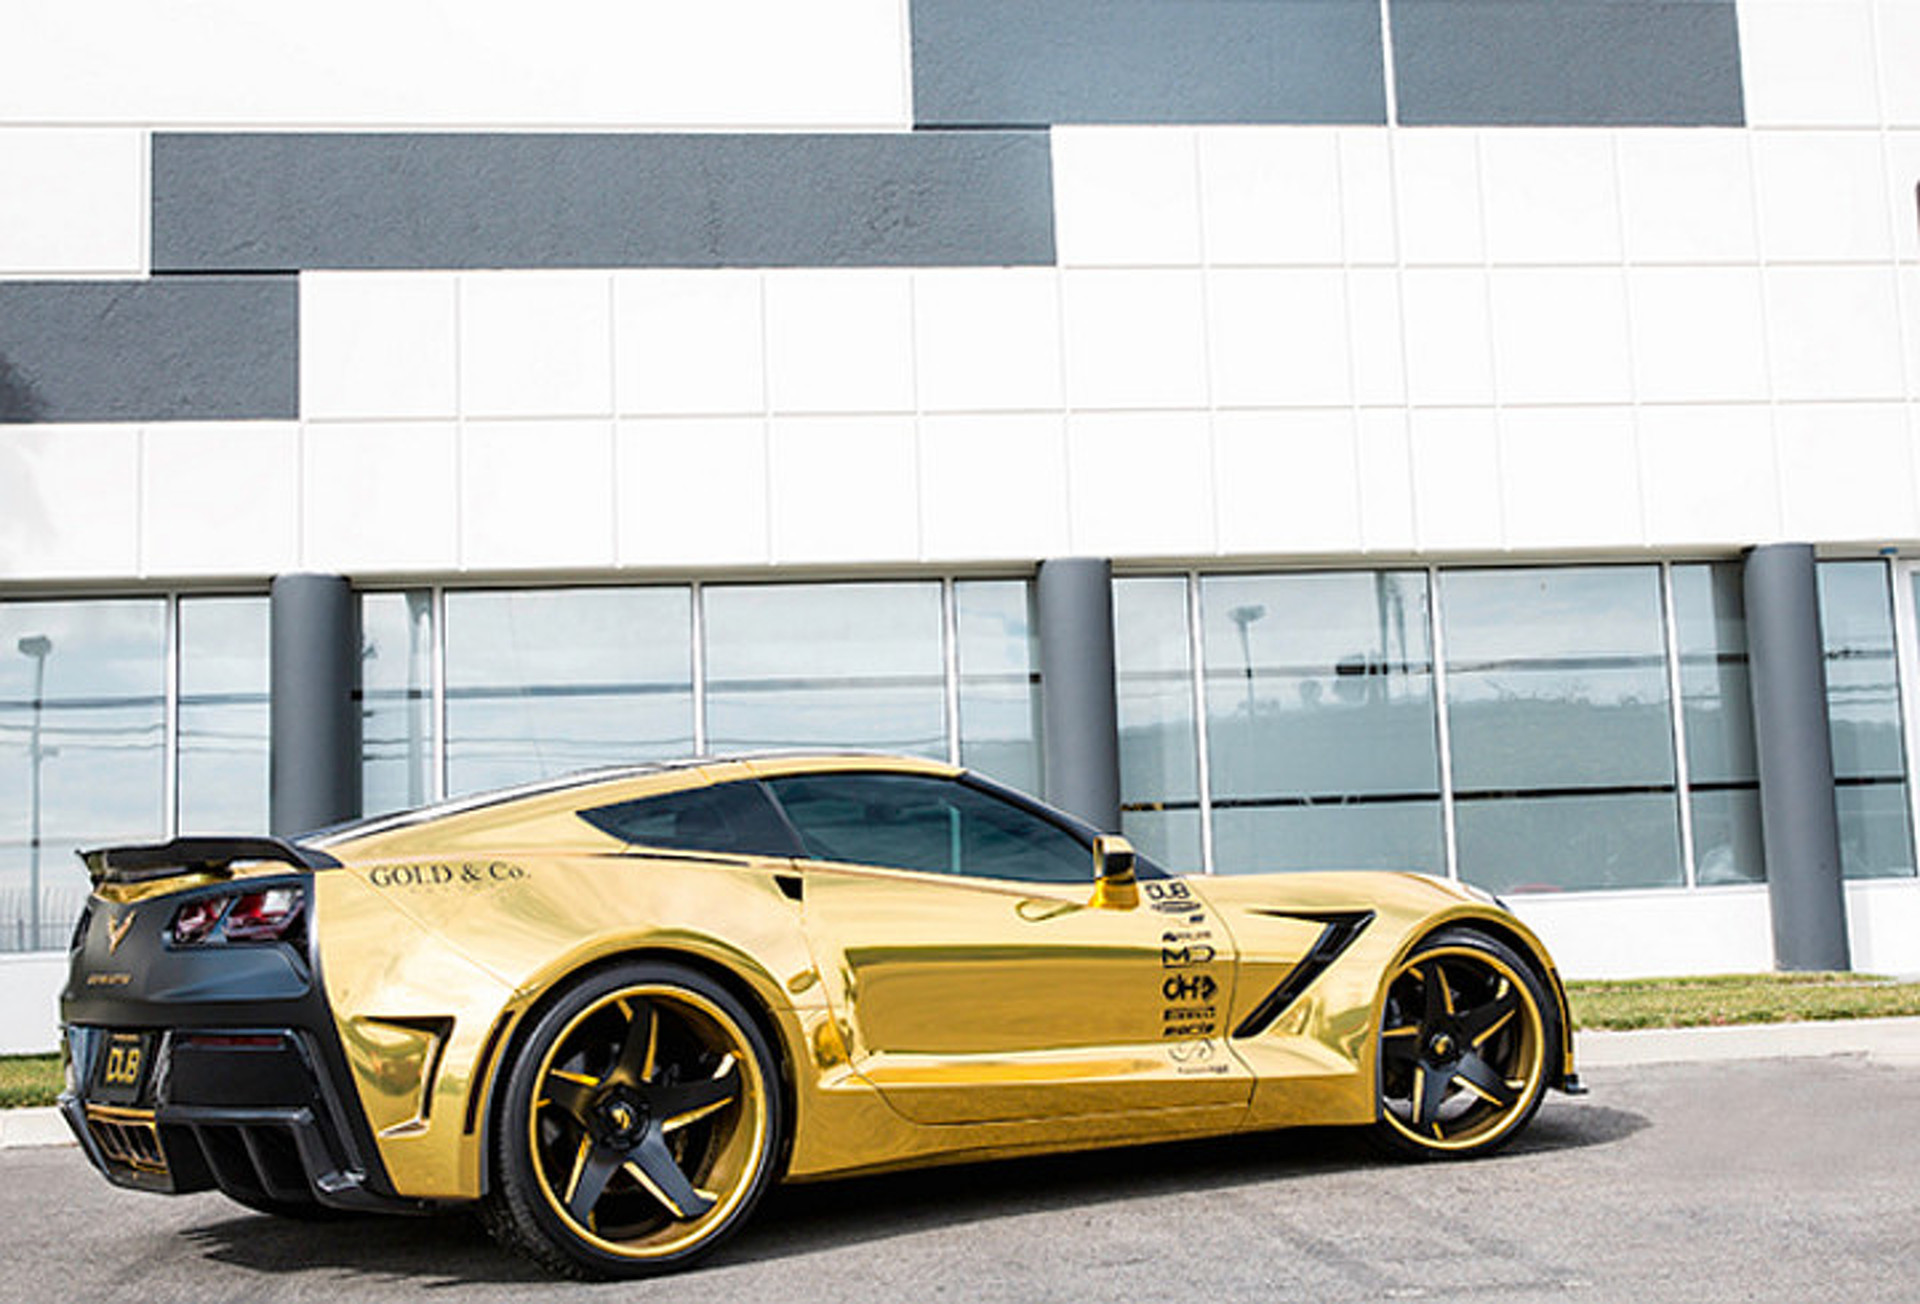 ferrari novitec rosso with The Worst Custom Tuner Cars Of 2015 on 5 in addition 20 moreover Todosobreferrari blogspot also Alfa Romeo Gt 1 9 Jtd For Sale as well Brown Ferrari Ff For Sale In Germany 53326.